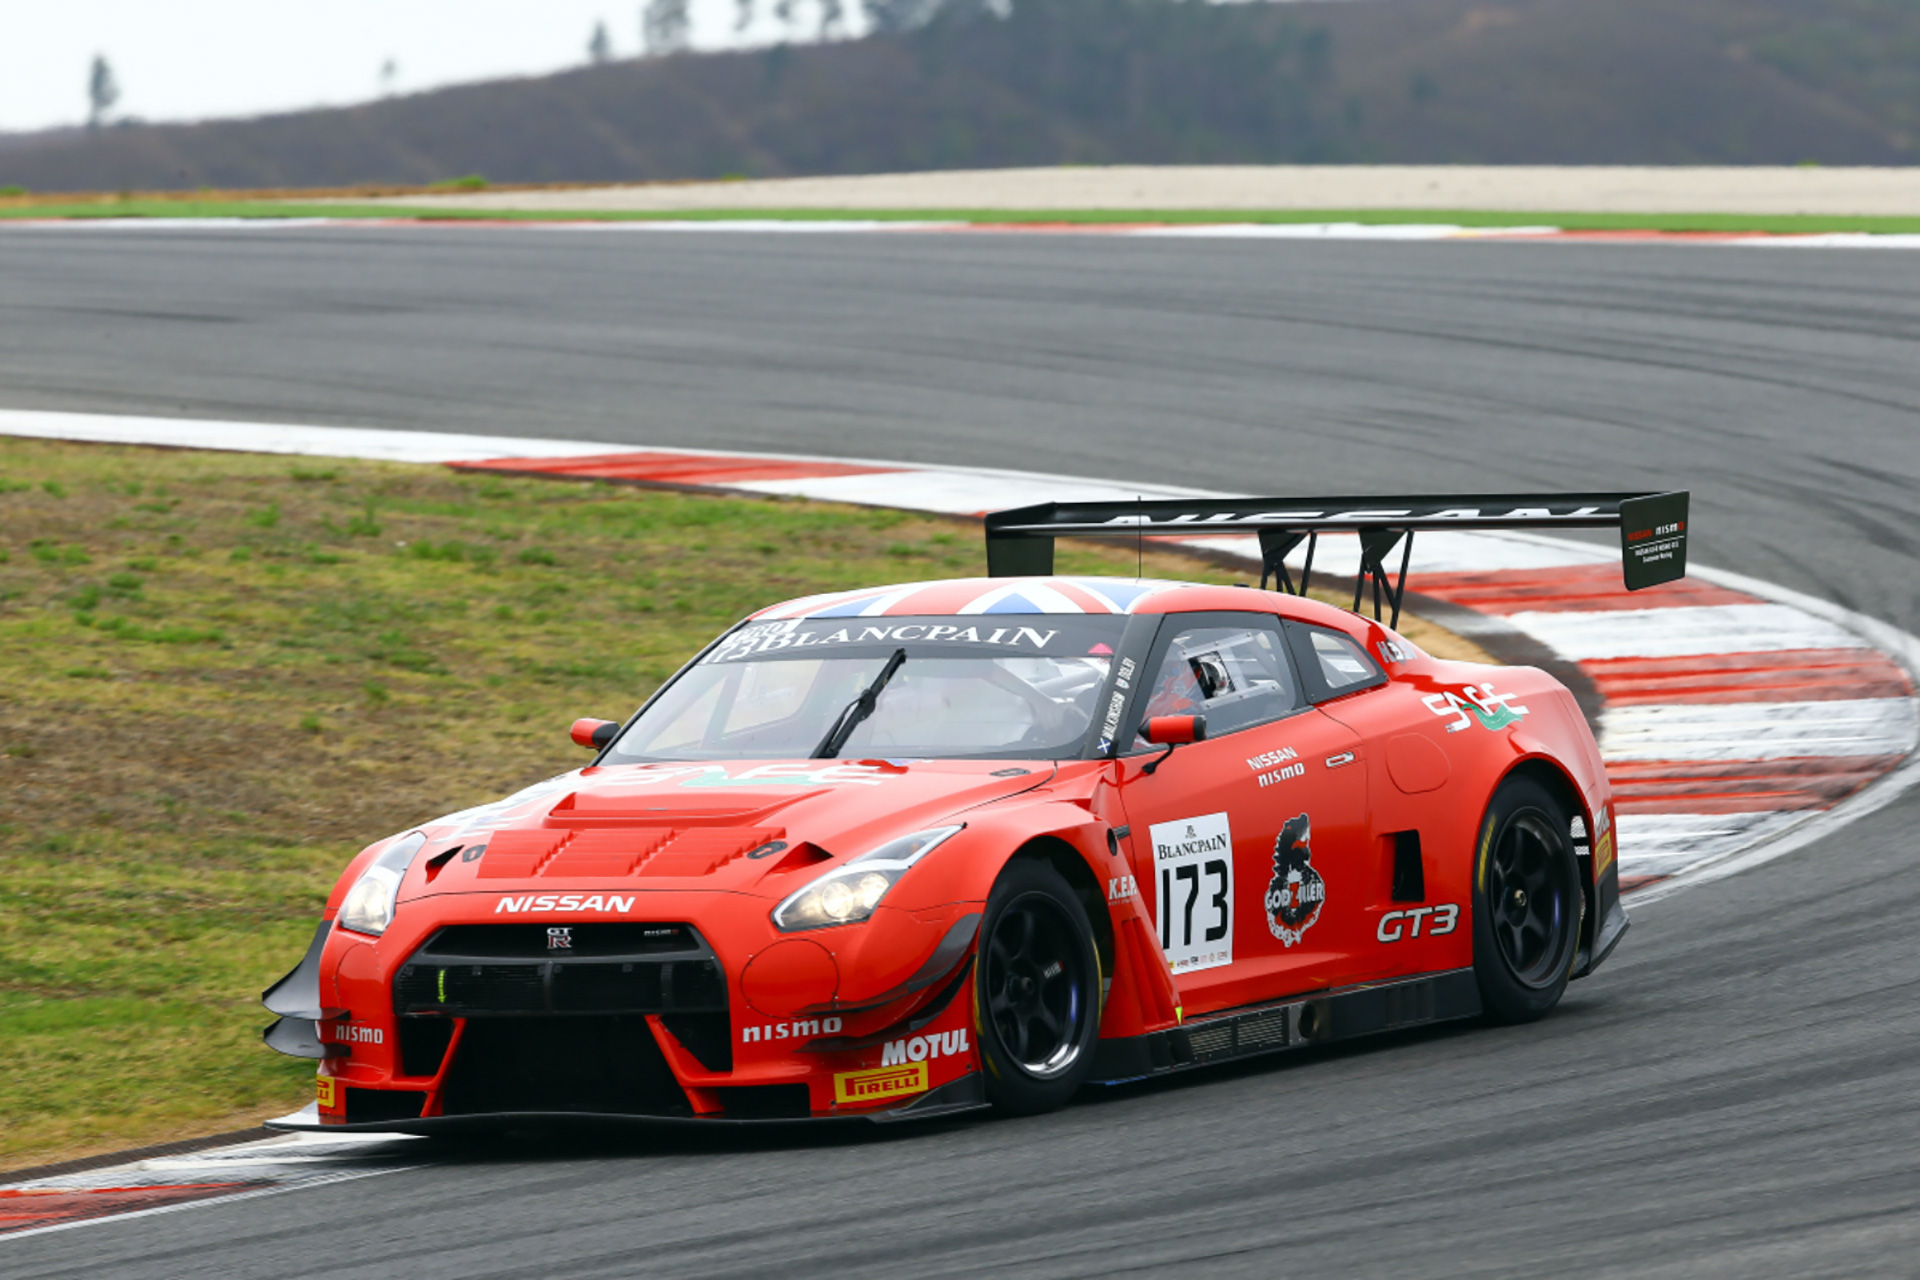 Nurburgring could mathematically hoist Sean and his team-mates into the coveted championship top 10.